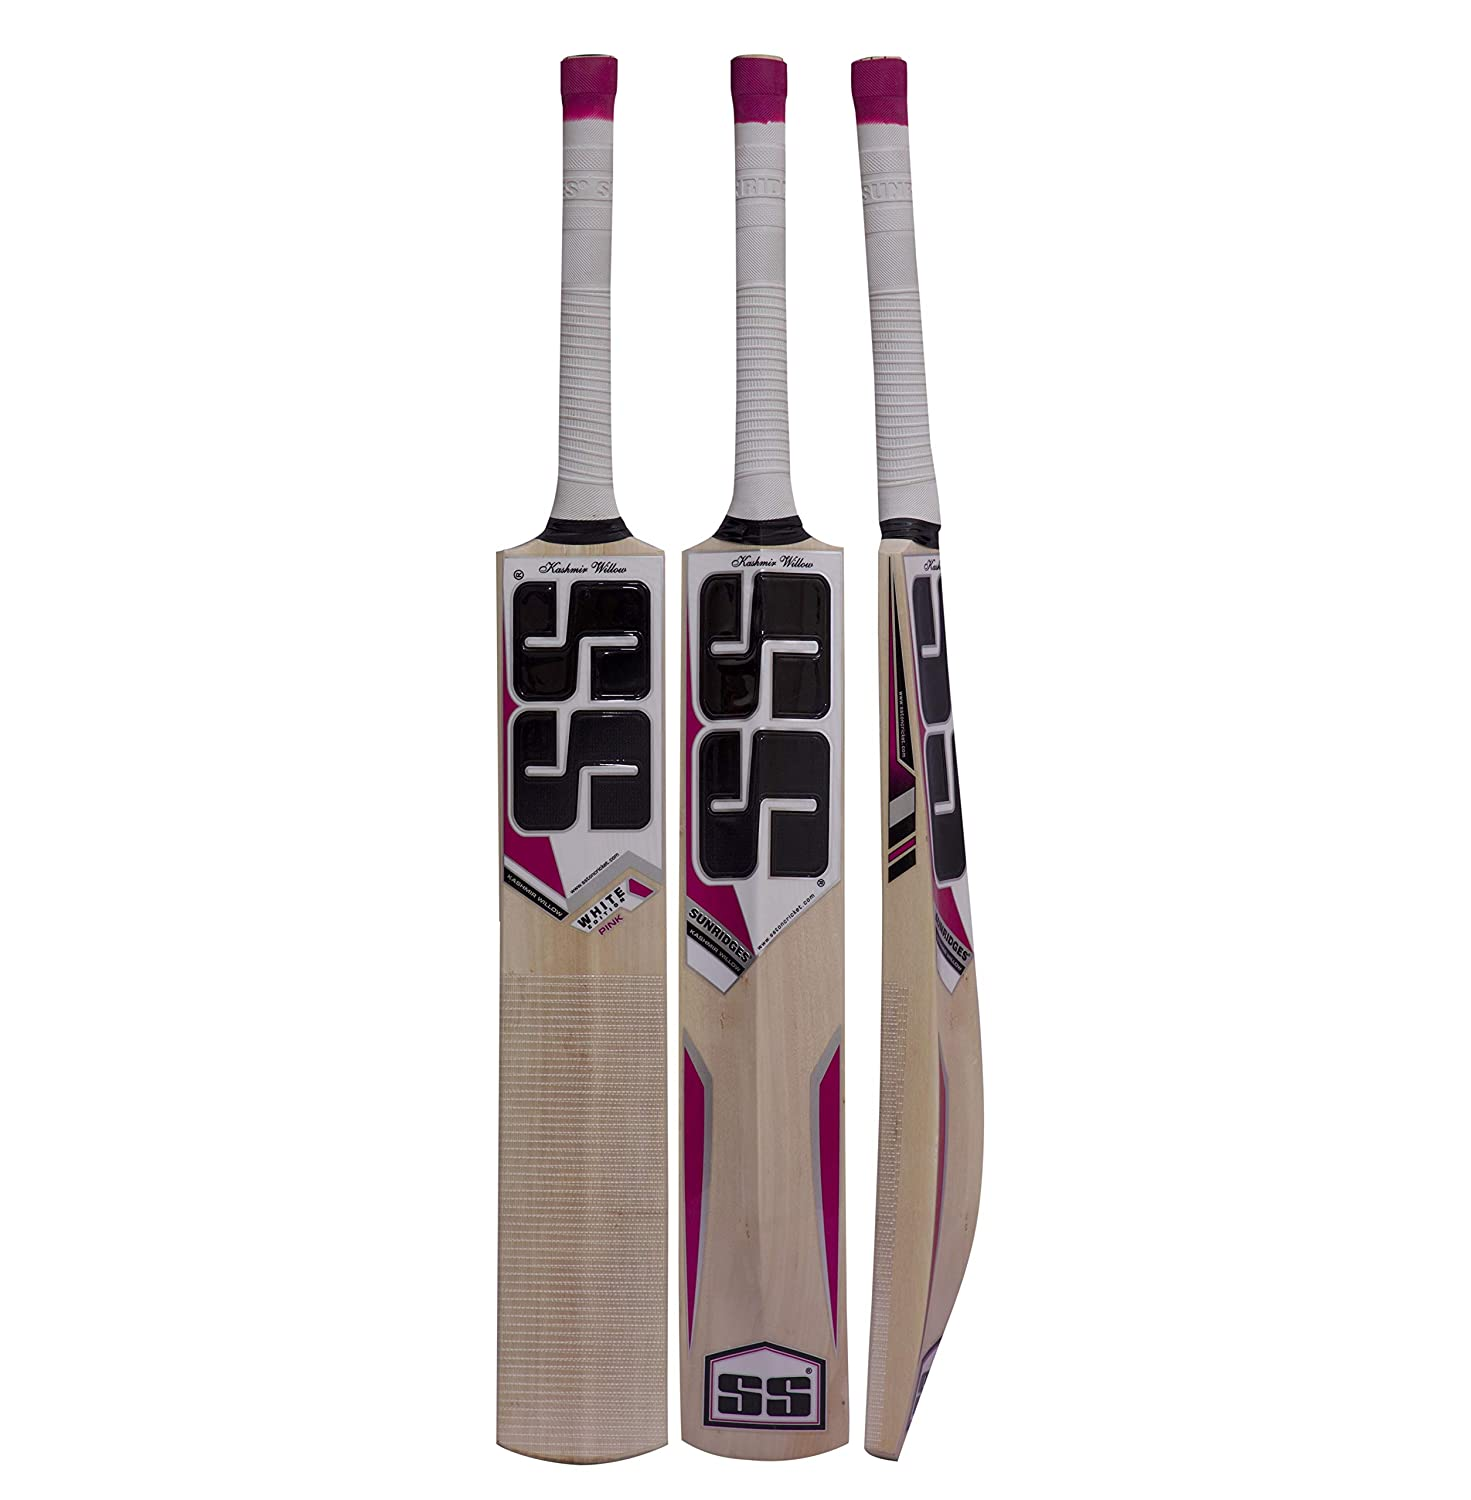 SS White Edition Pink Kashmir Willow Cricket Bat